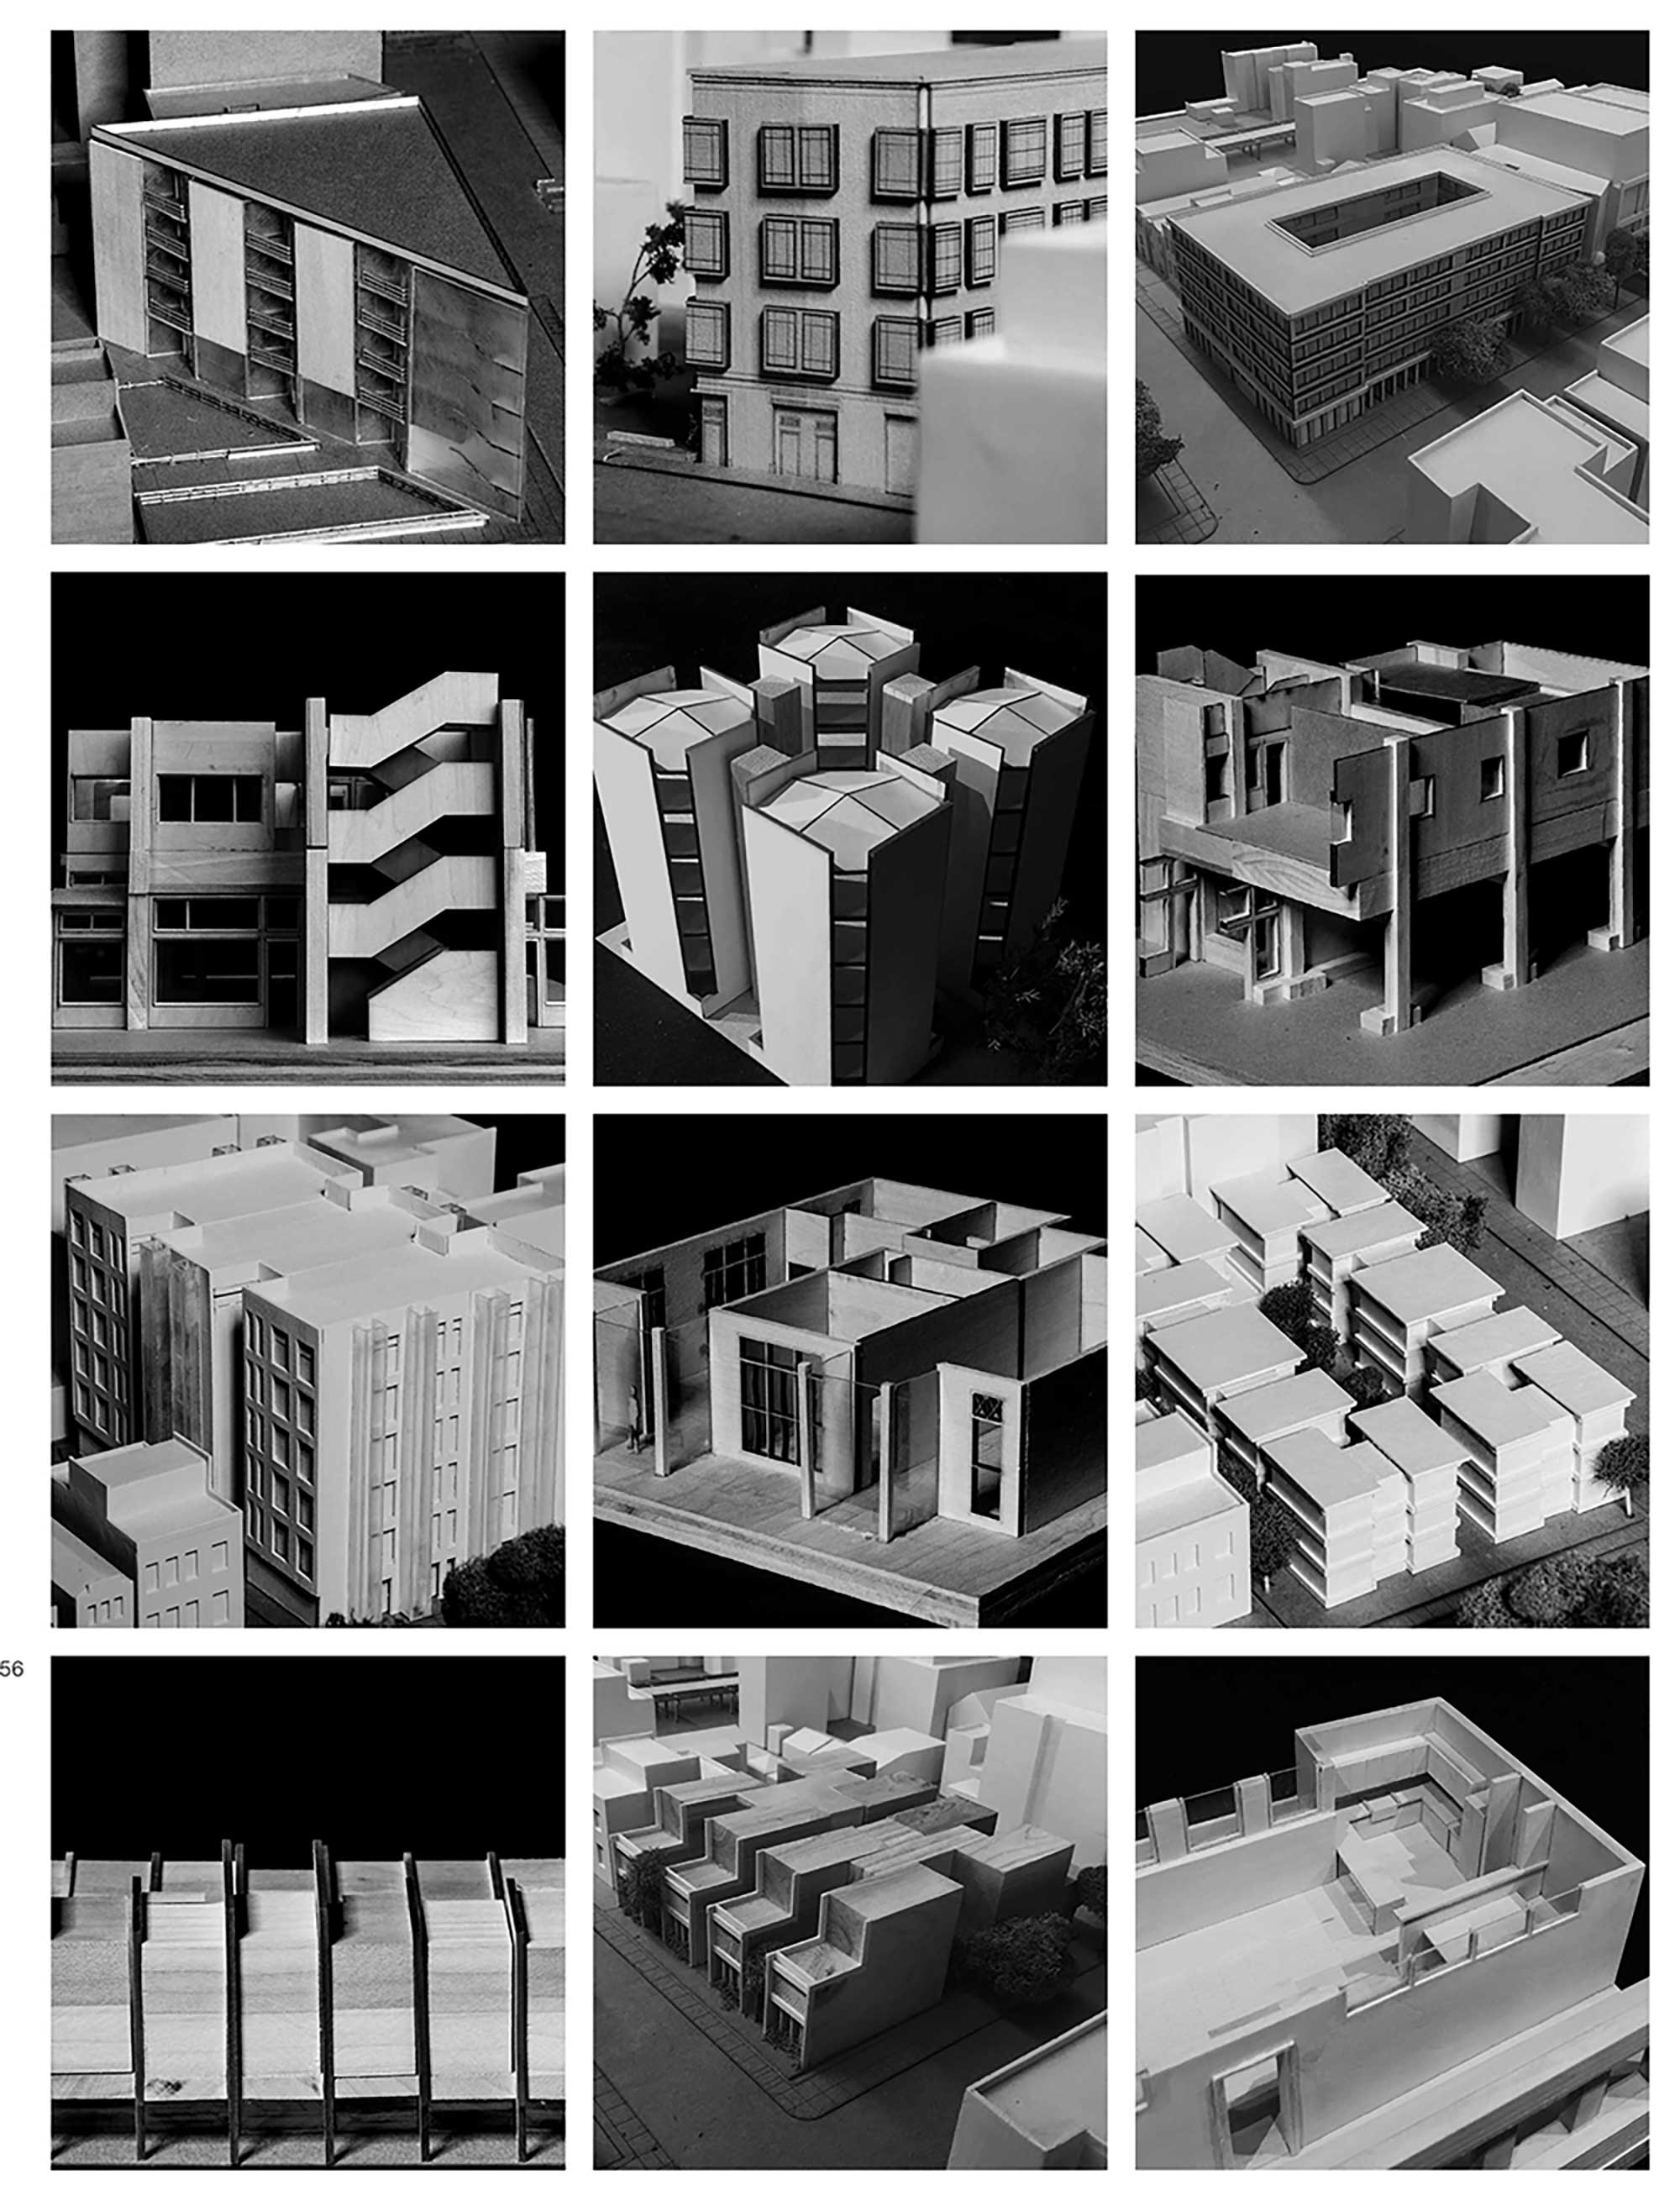 Second-Year, Spring semester: final and case study models by numerous students for the private residence design project